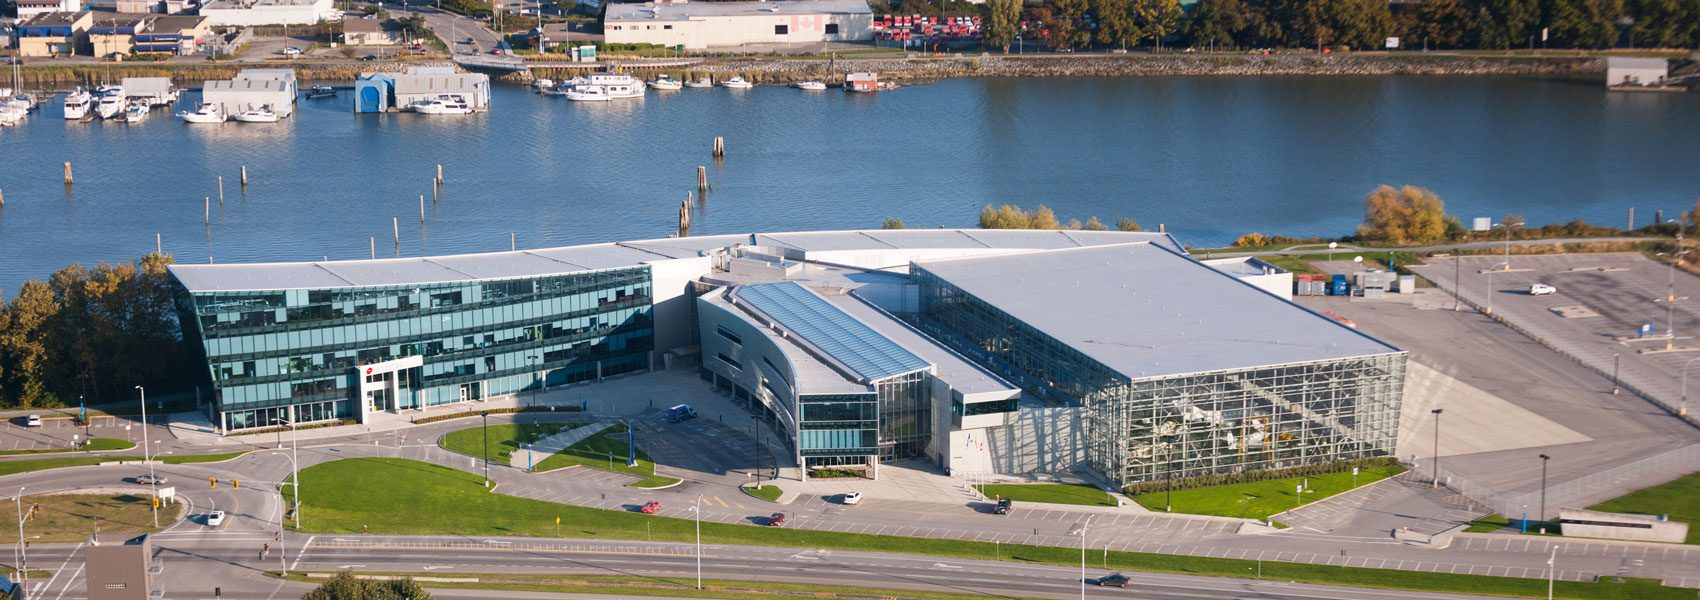 Aerial view of the Aerospace Technology campus building and hangar.